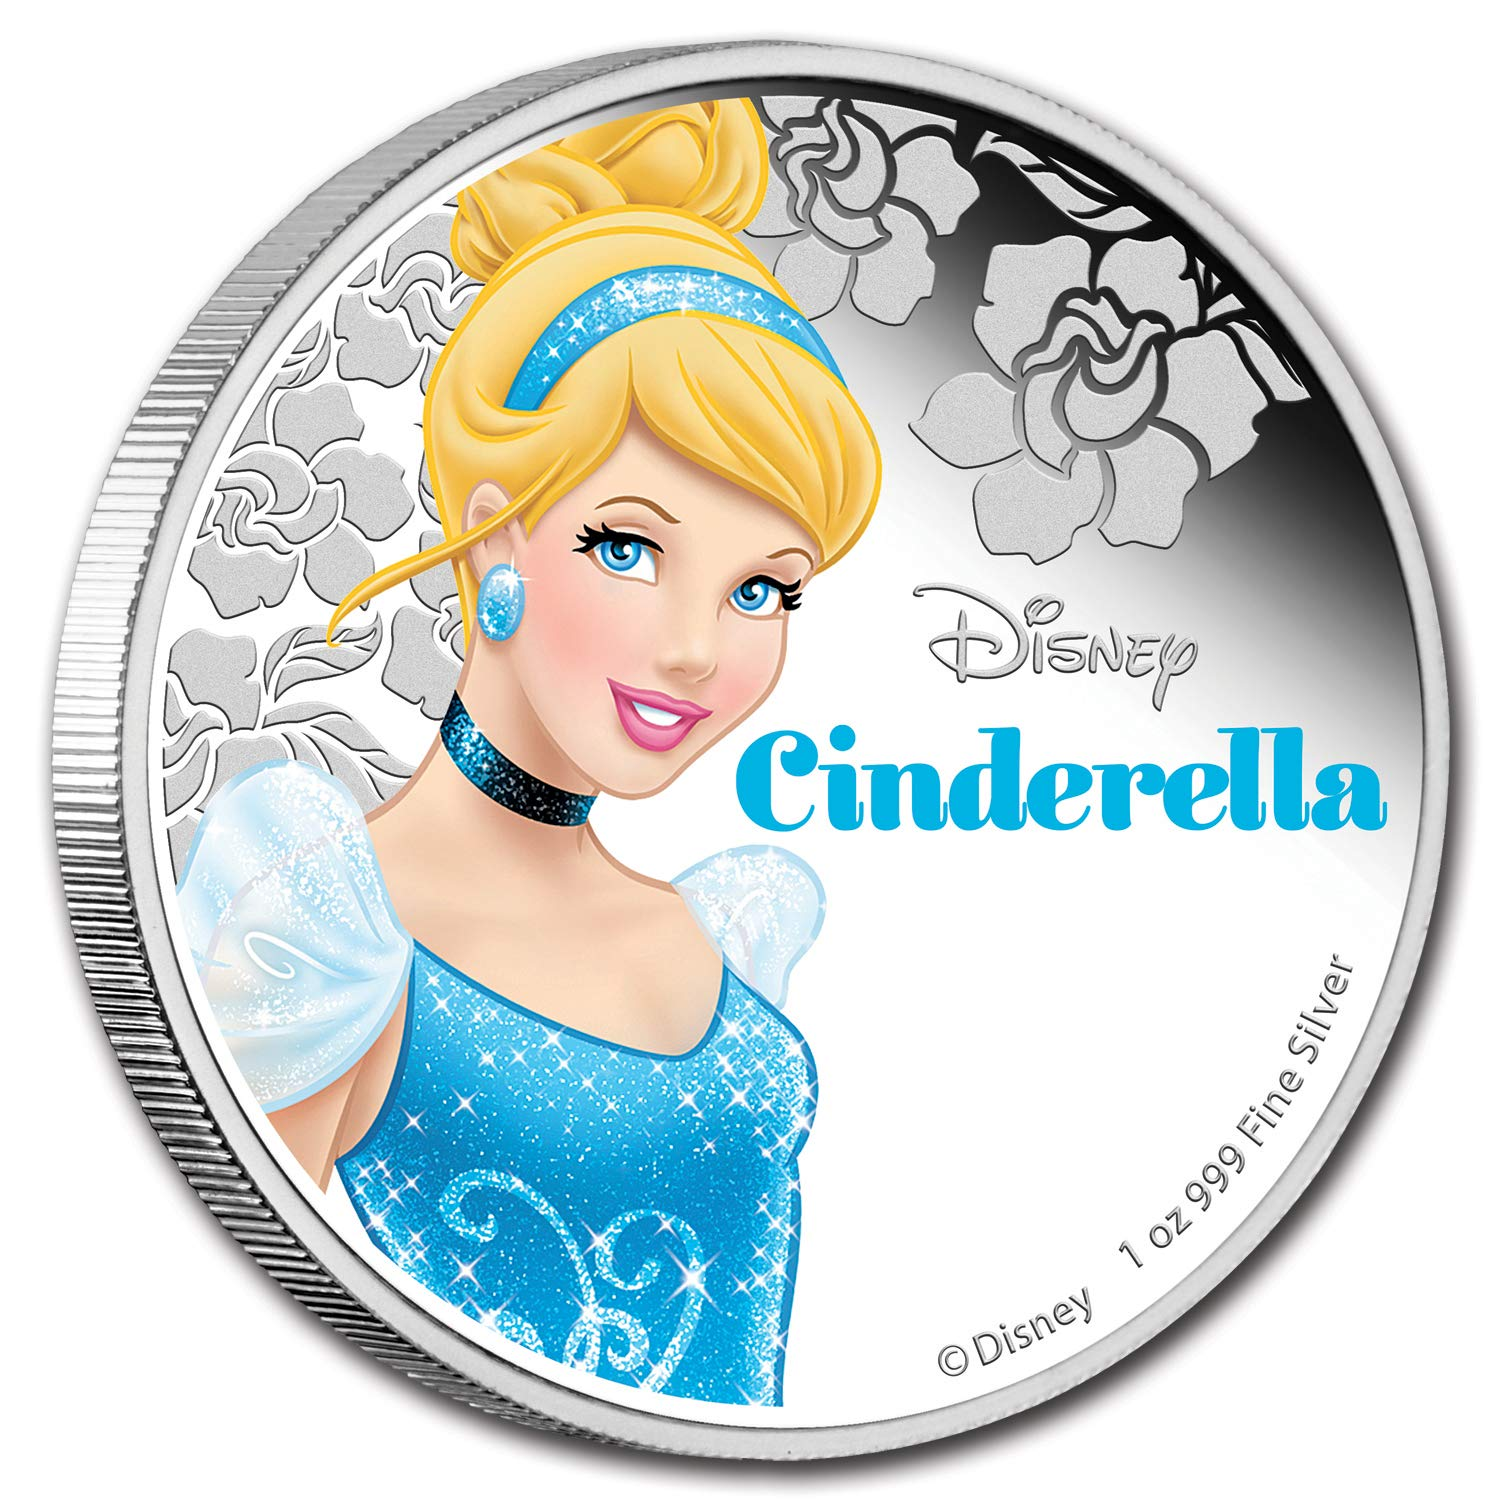 2016 SILVER DISNEY PRINCESS SERIES NGC PF70 FIRST DAY OF ISSUE POCAHONTAS